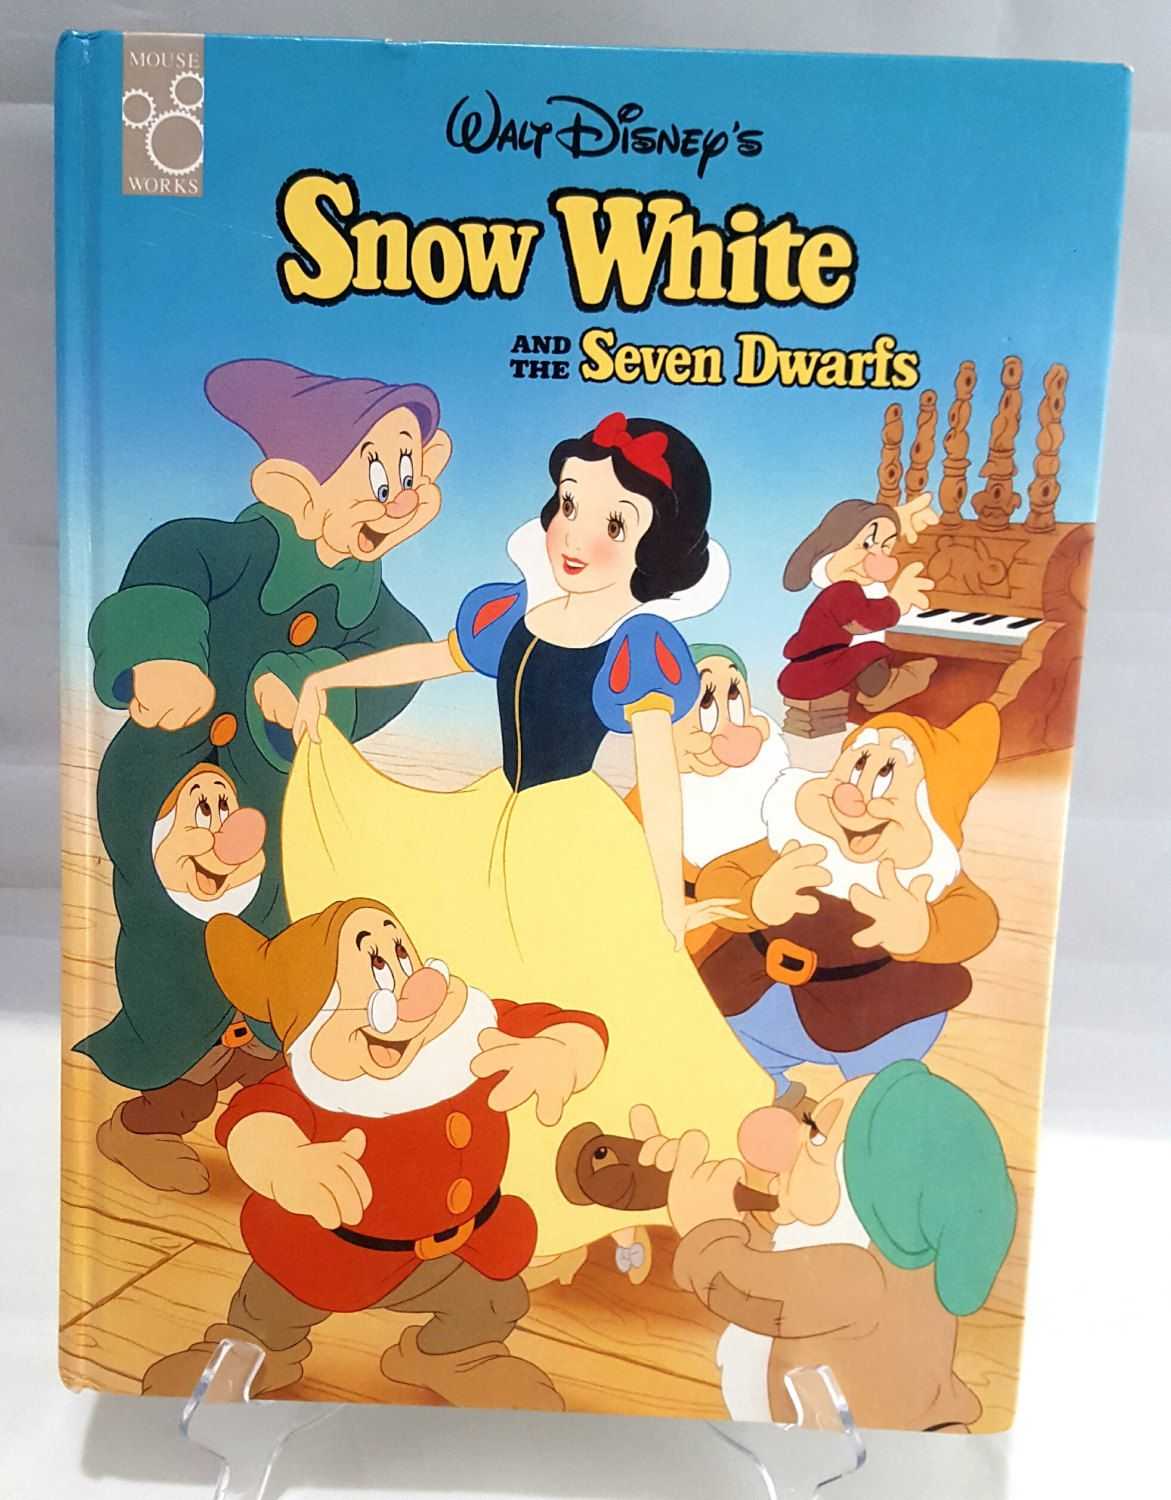 Snow white apron etsy - Walt Disney S Snow White And The Seven Dwarfs Classic Series Large Hardcover Storybook